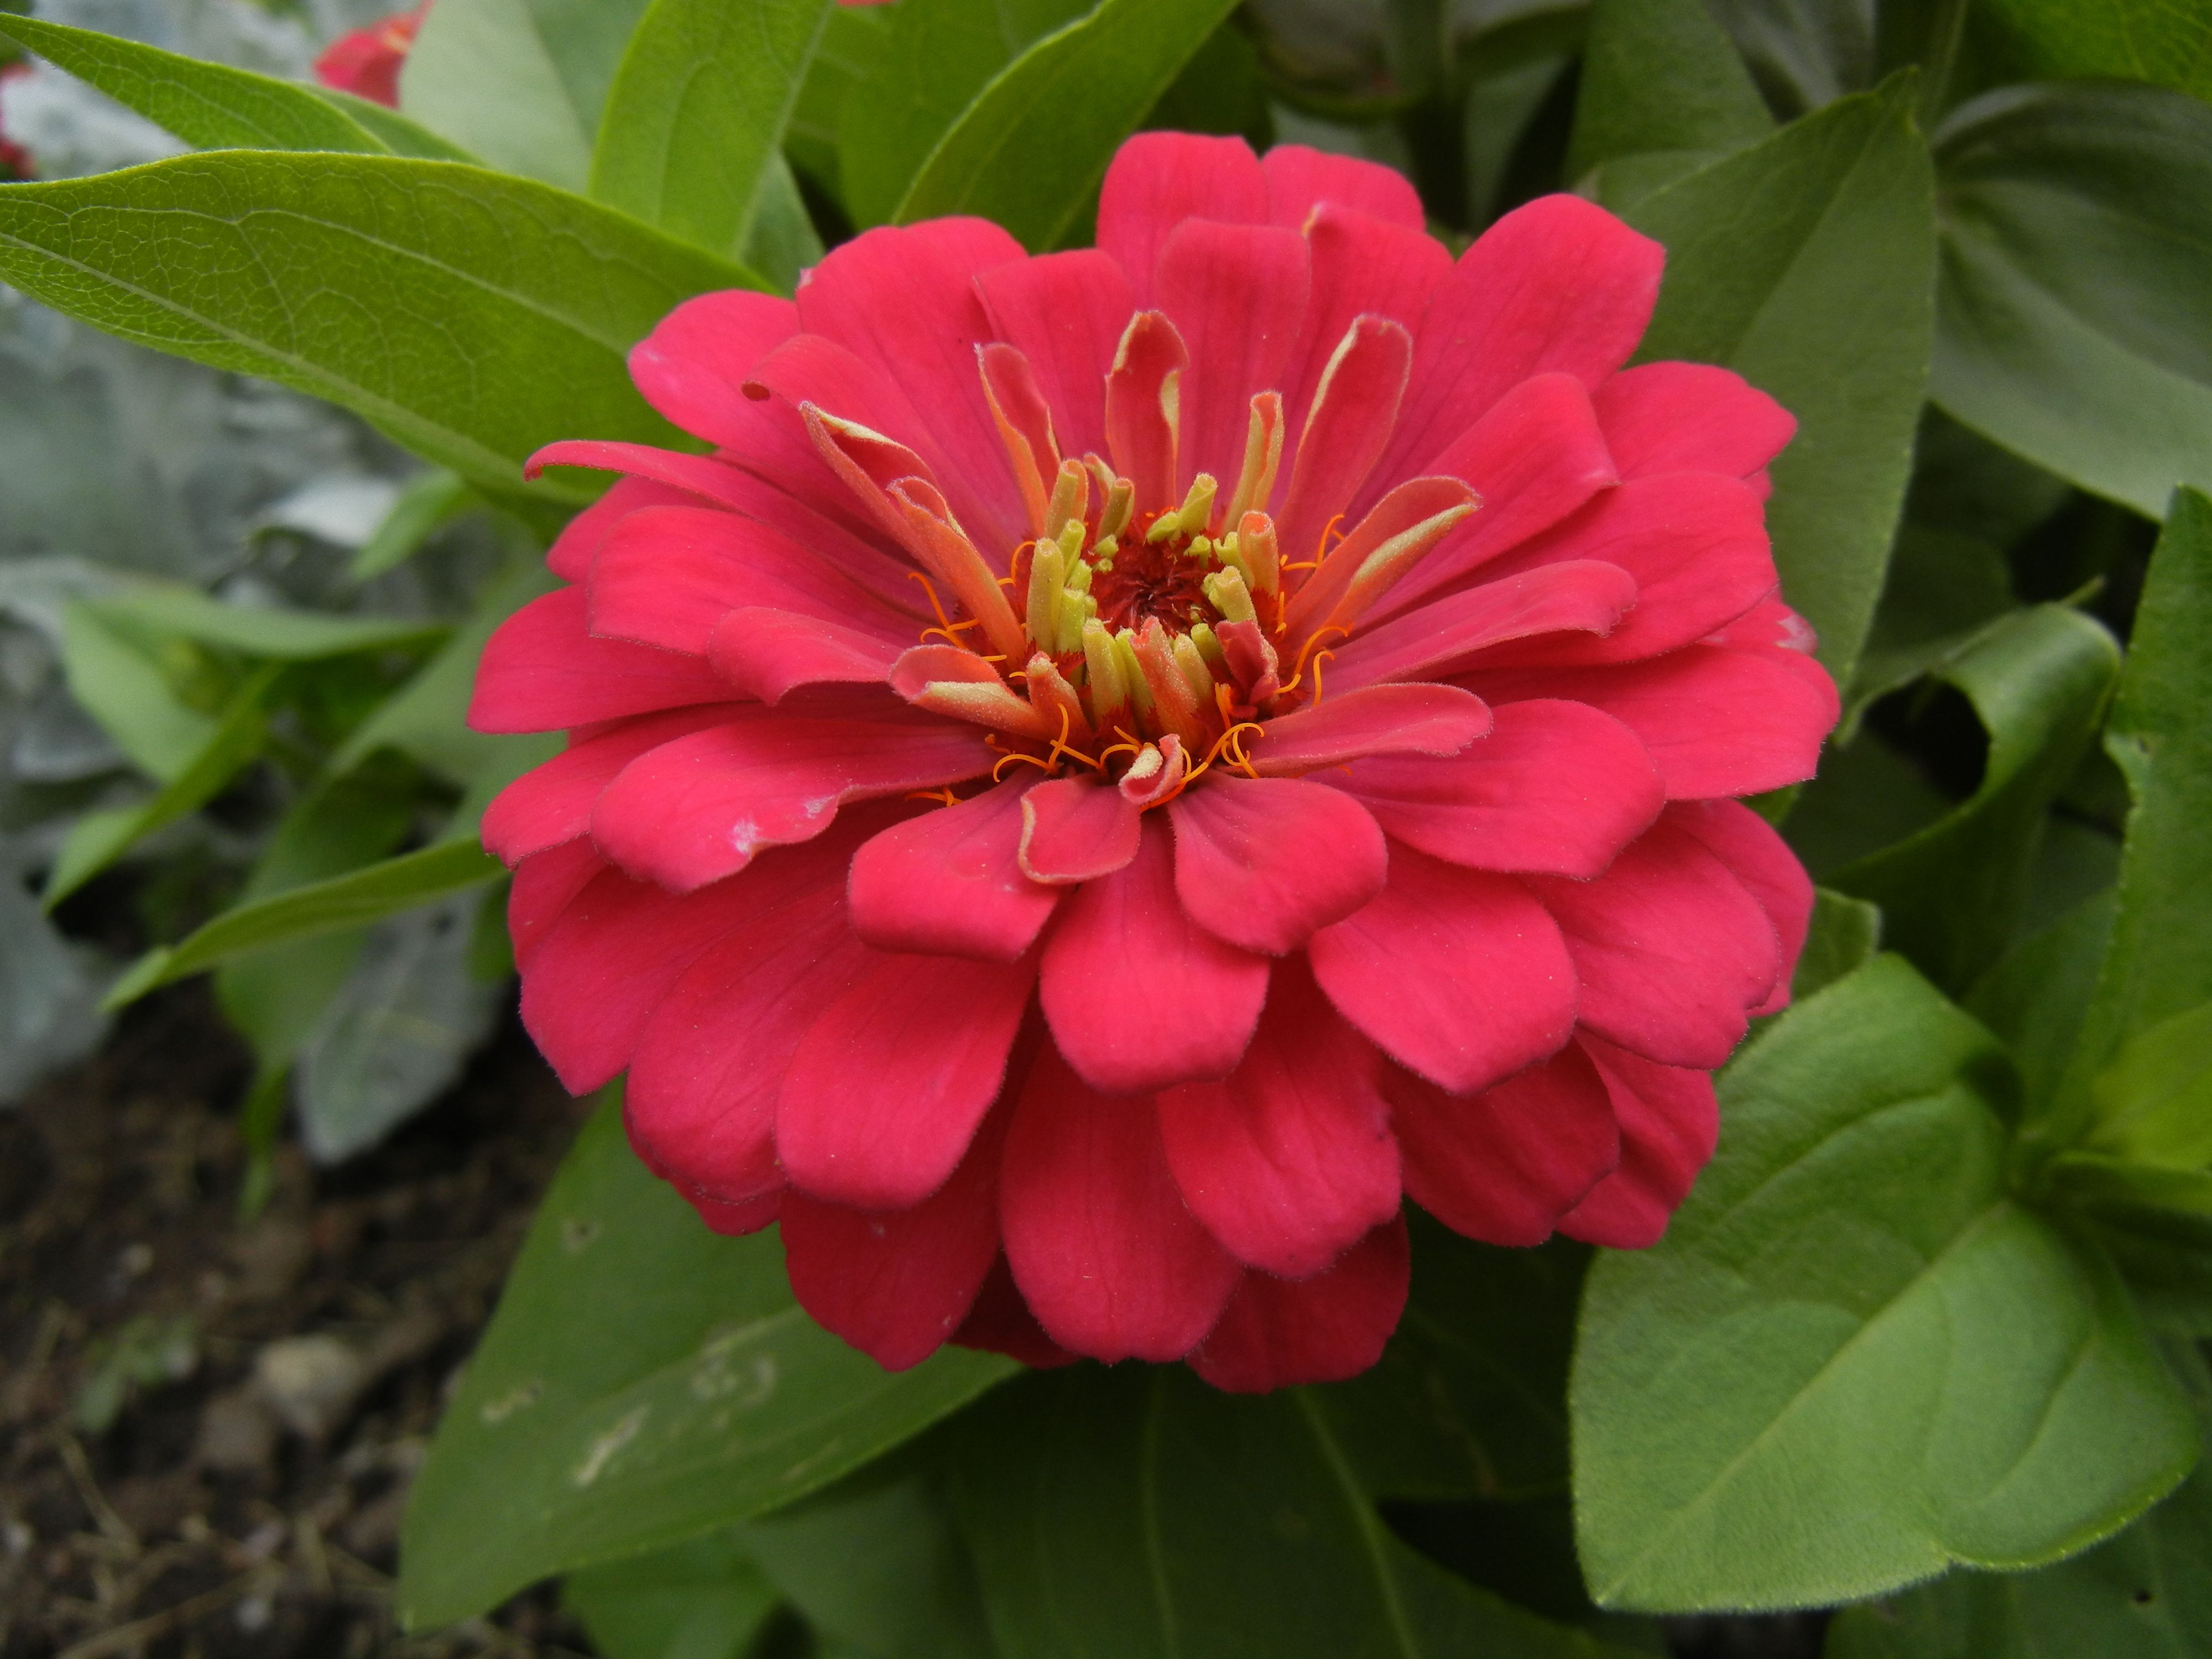 Zinnia at Murray Park Murray City Utah July 2016 Murray Park Murray City Utah Pinterest